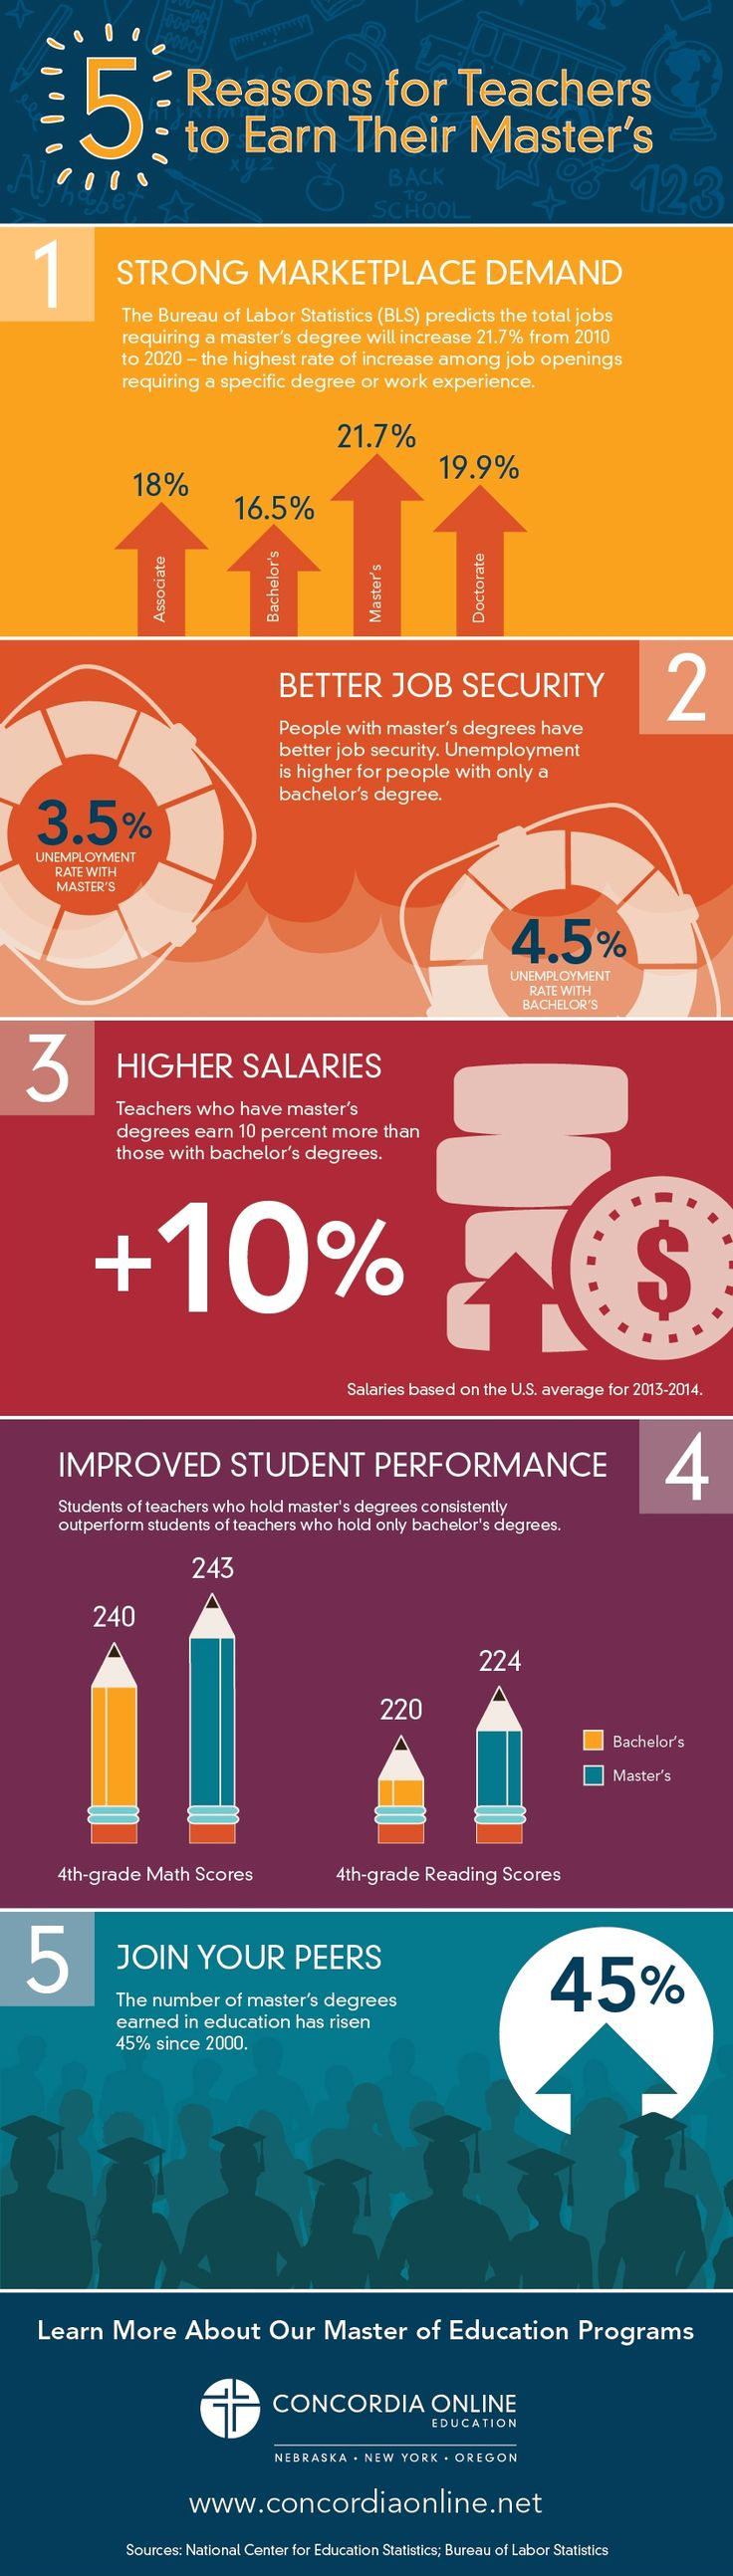 Intuitively, it makes sense for teachers to continue their education beyond their bachelor's degree and earn a master's degree or higher. But does it add up logically? We looked at the latest research on the subject and found a master's degree benefits not only a teacher's paycheck and job prospects, but it also improves their performance in the classroom.